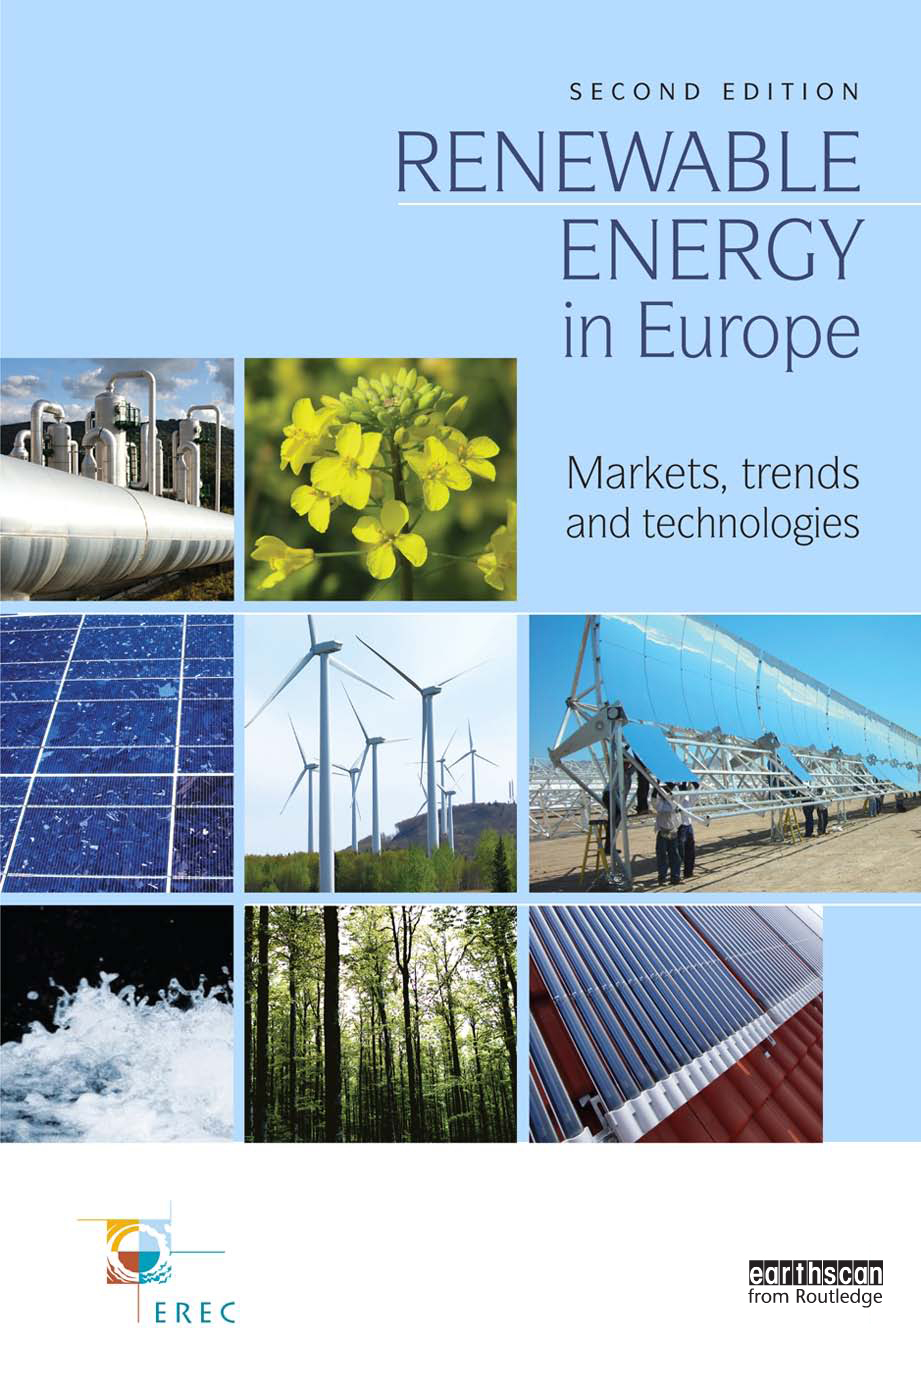 Download Ebook Renewable Energy in Europe (2nd ed.) by European Renewable Energy Council Pdf